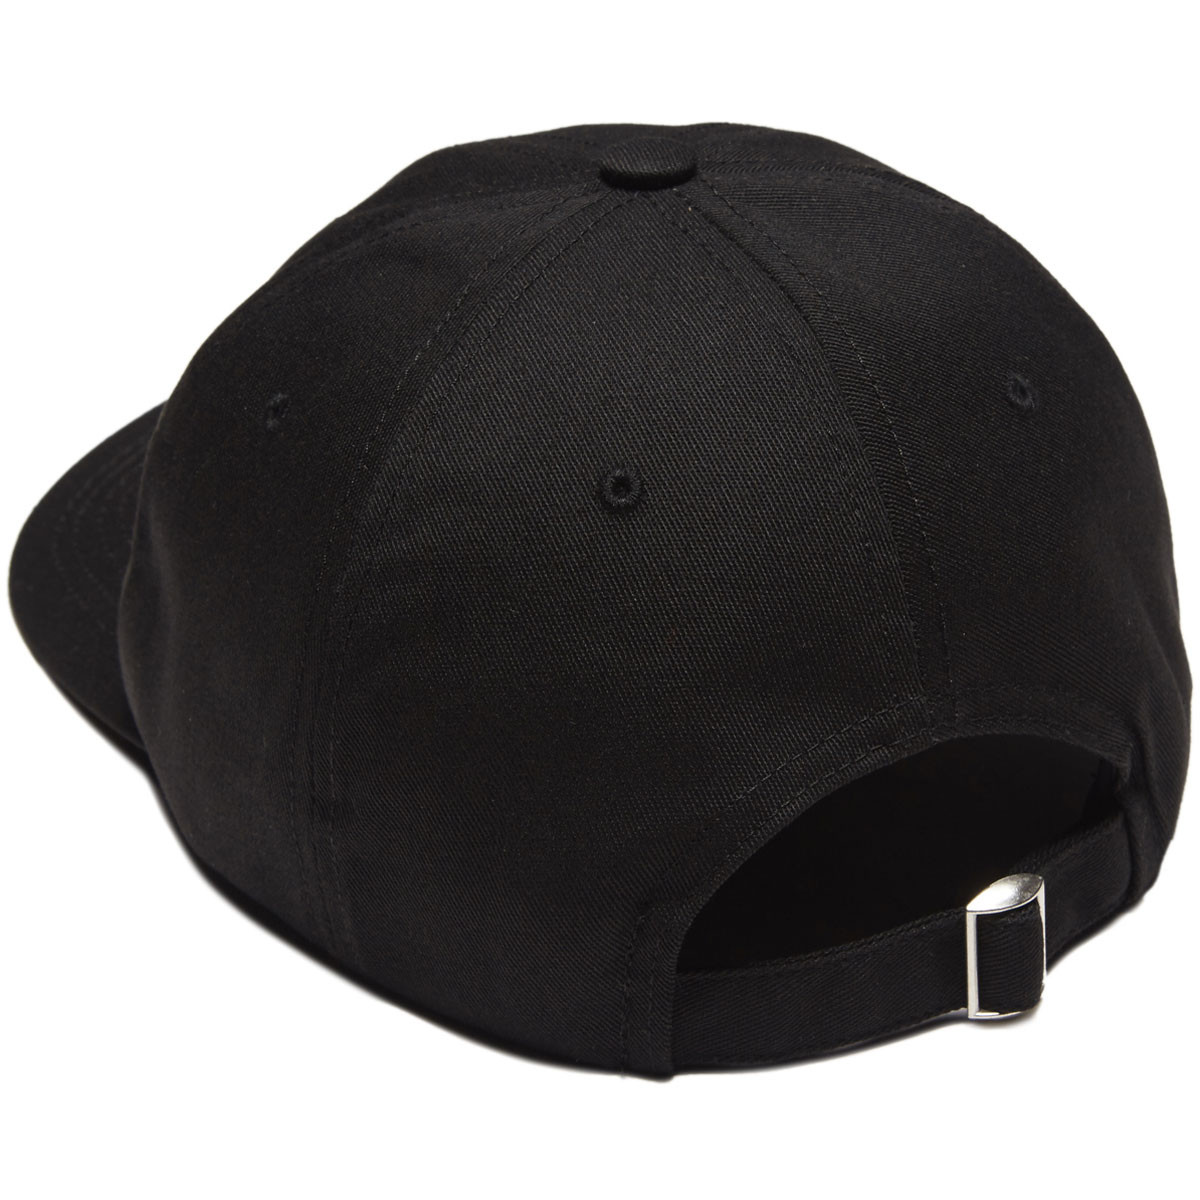 b72331037f6ad Raised By Wolves Fuck Off Dad Hat - Black Twill